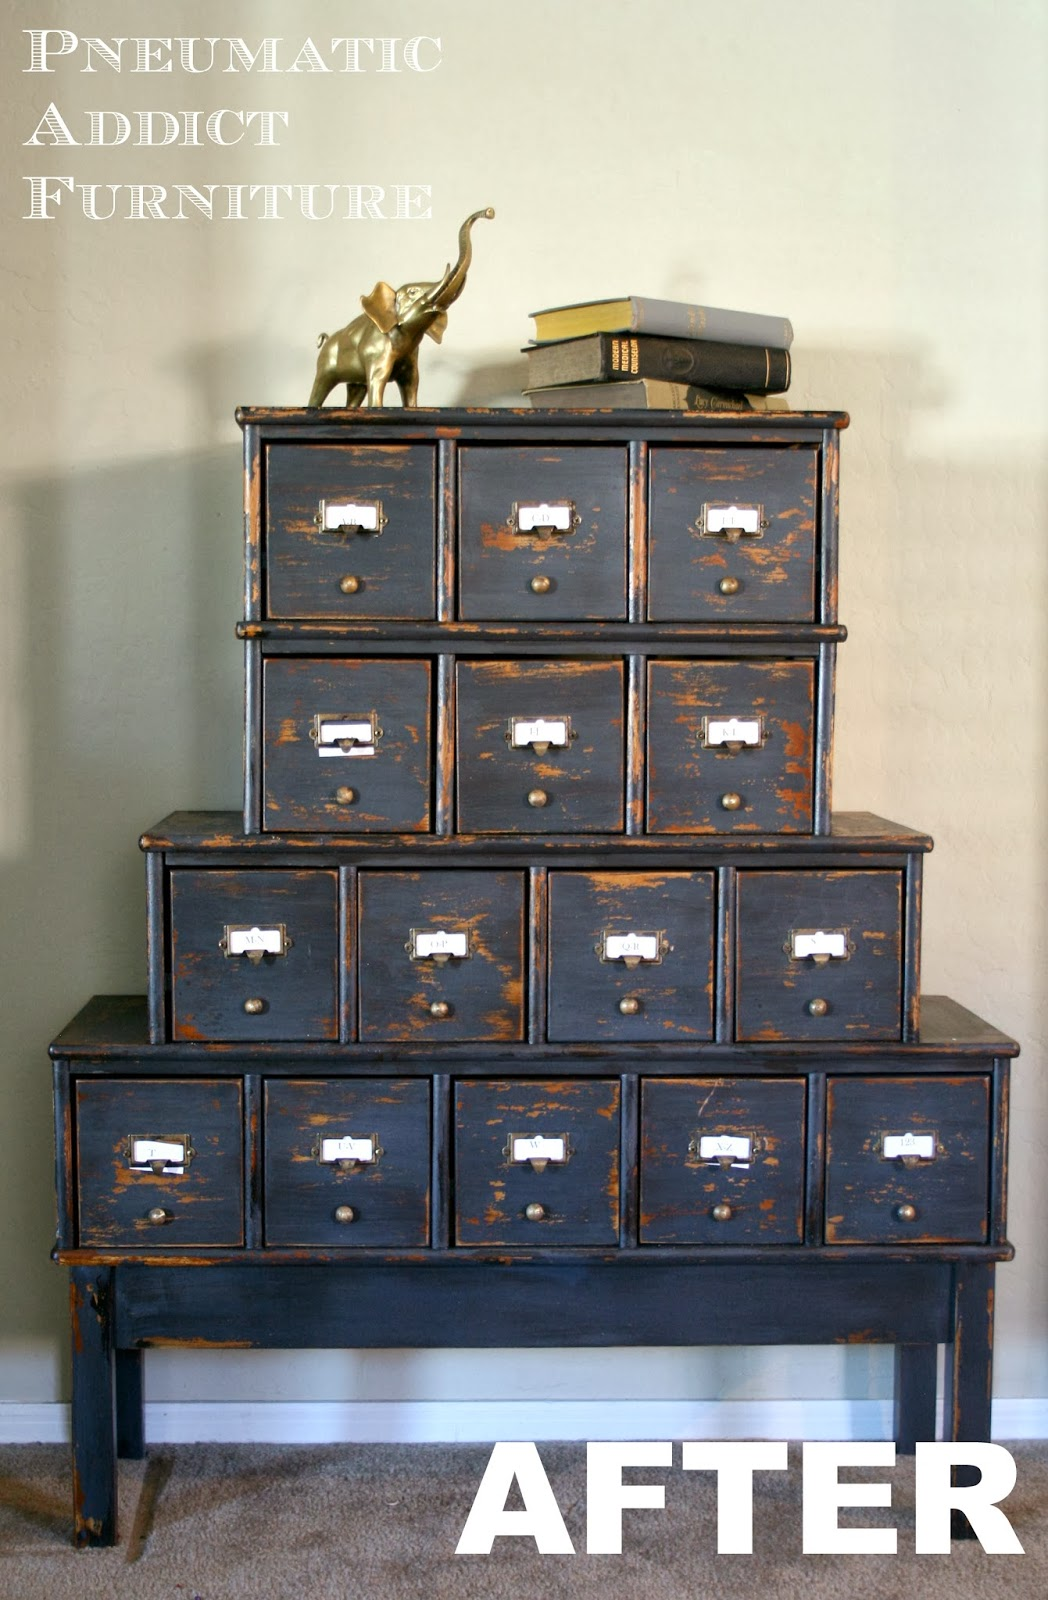 Milk Paint Card Catalog Pneumatic Addict